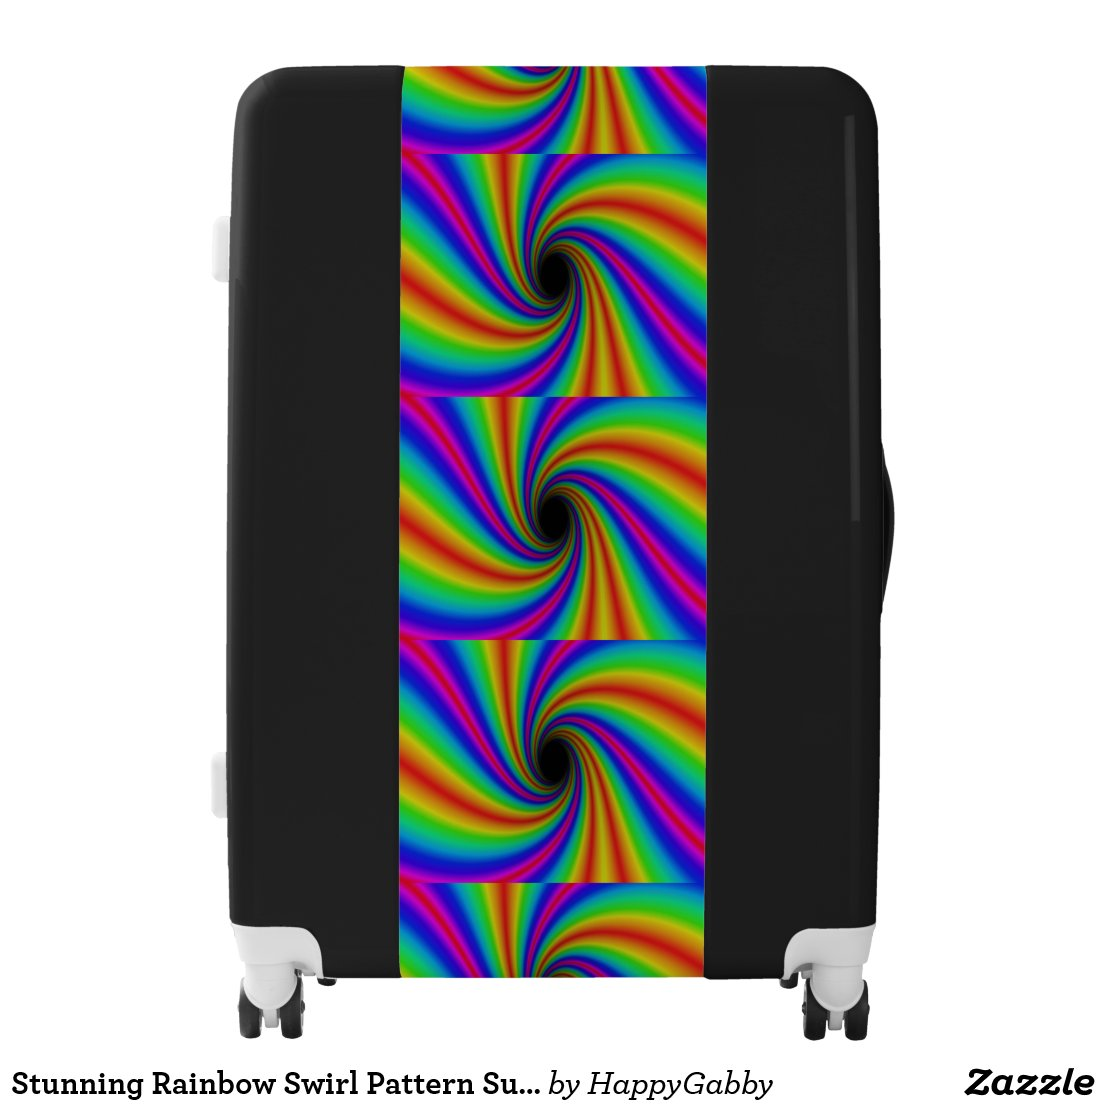 Rainbow Swirl Pattern Suitcase